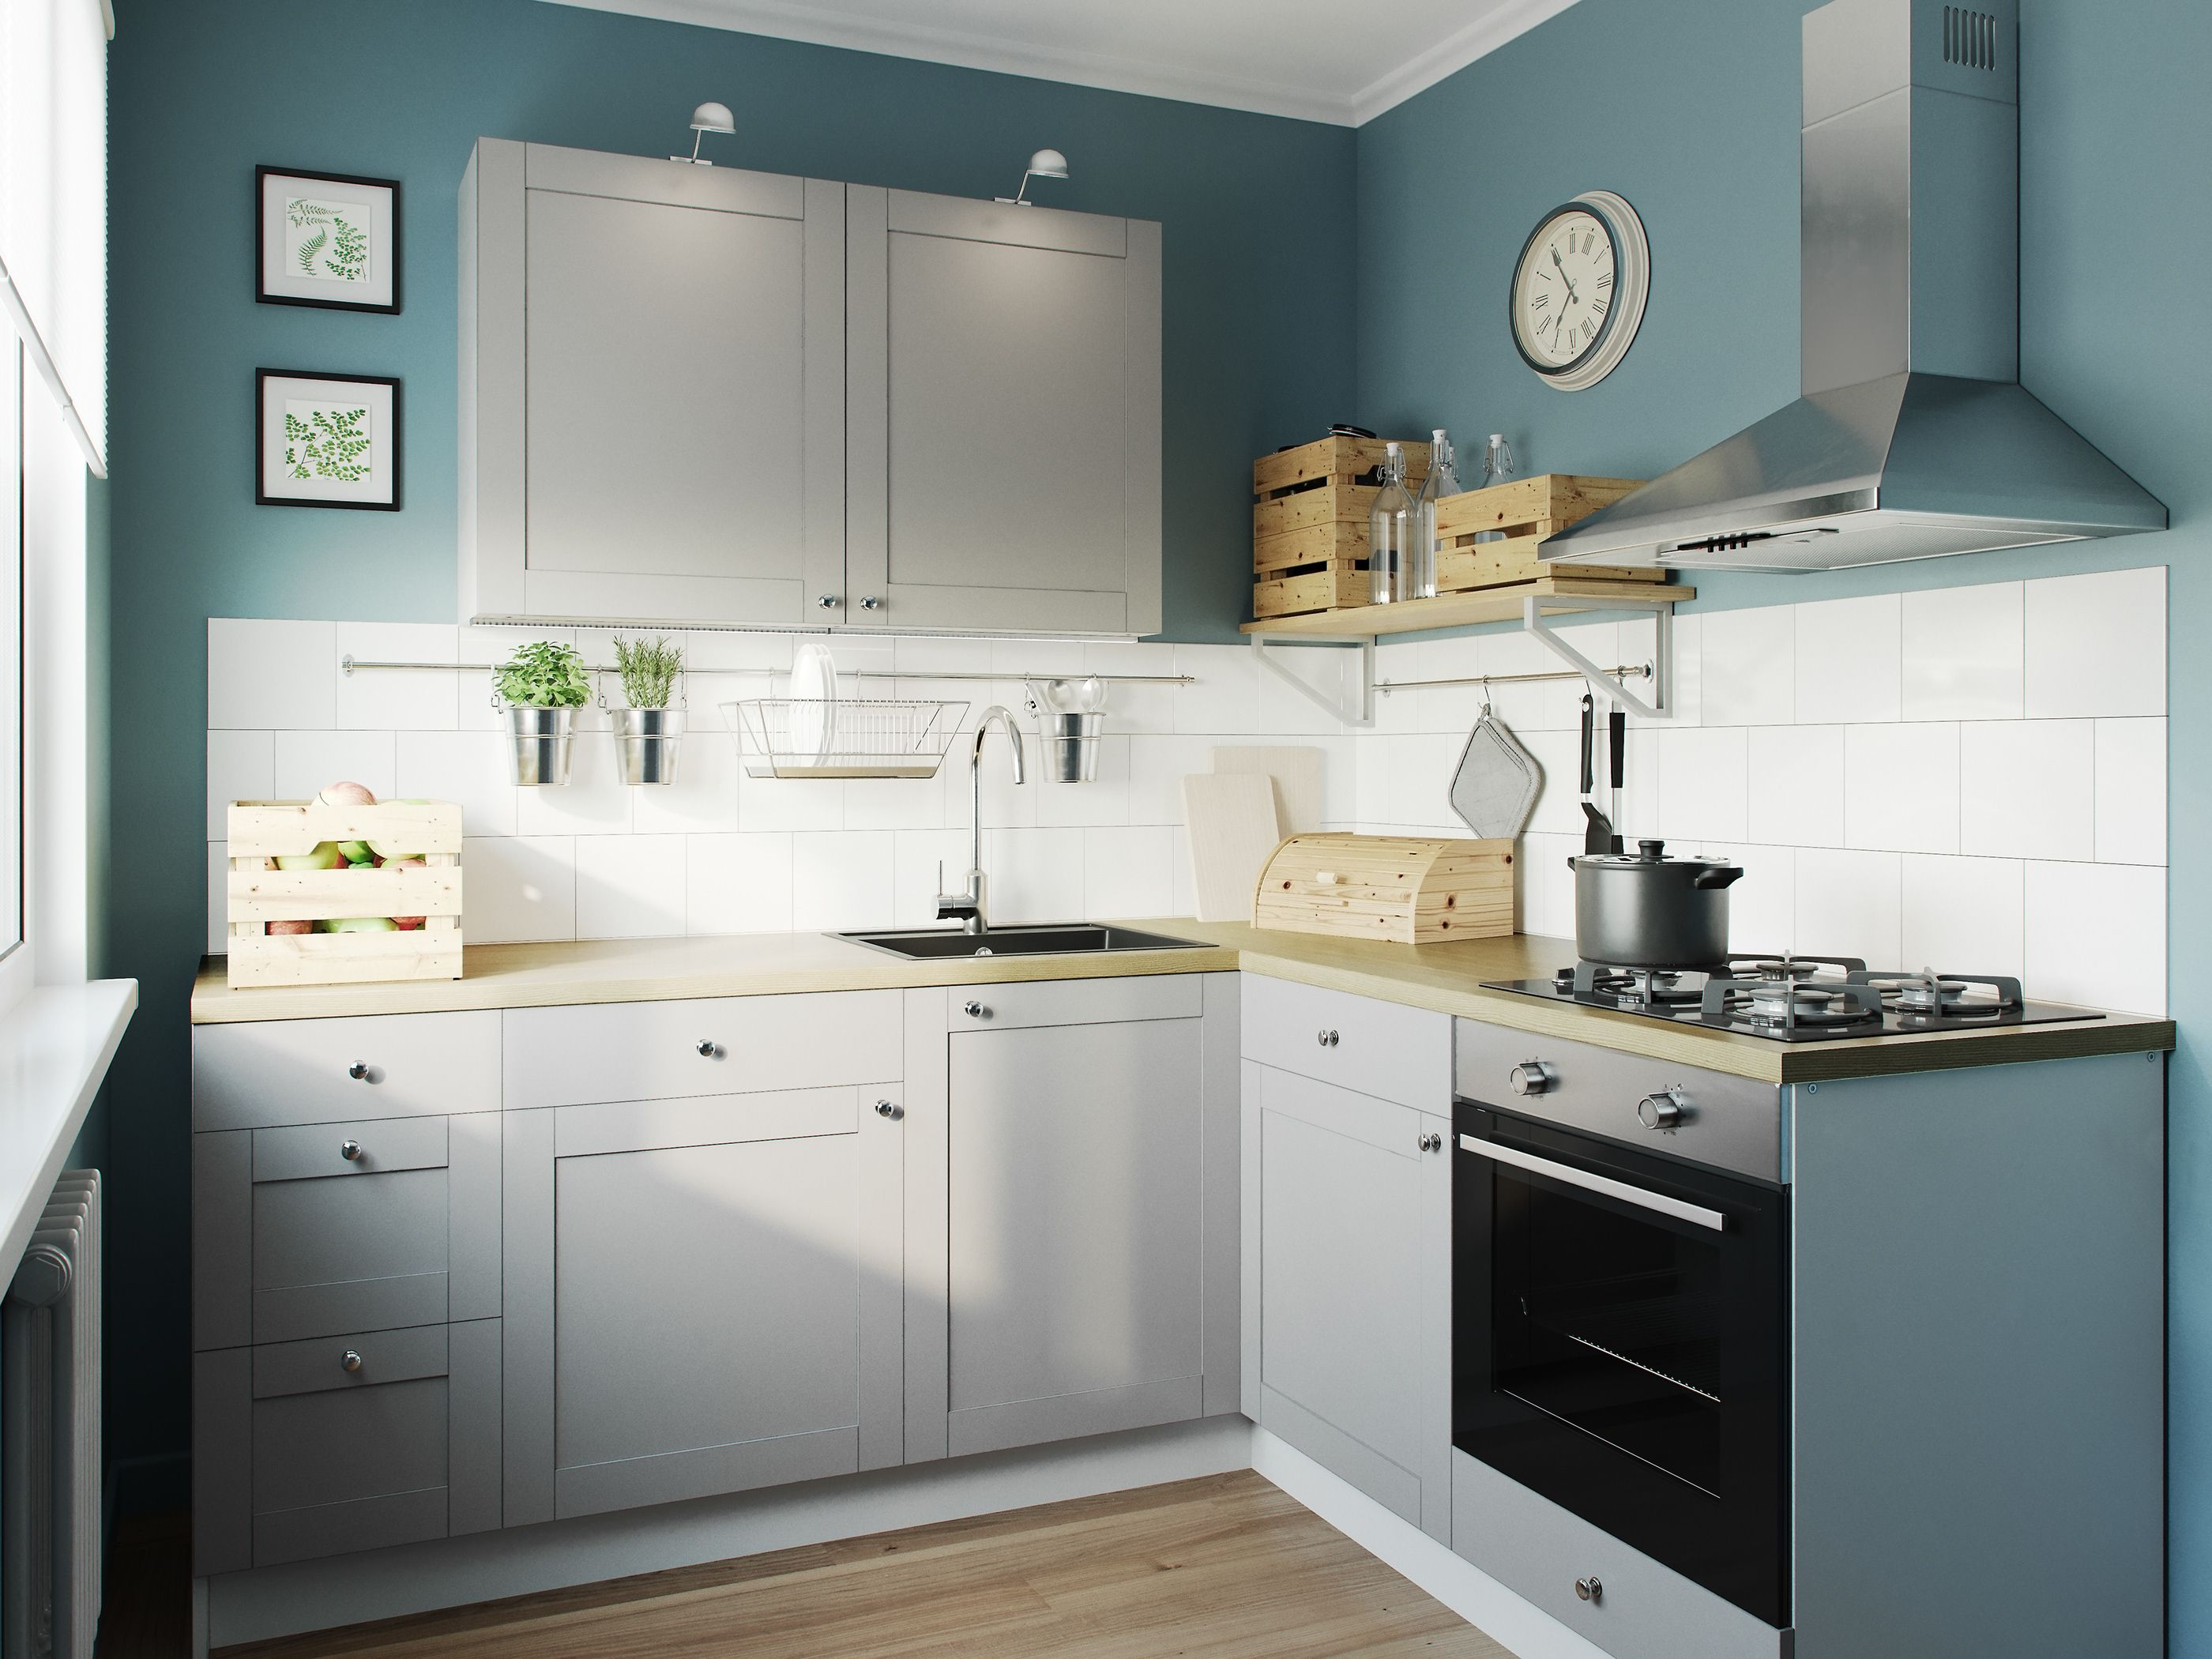 Visualization Of Kitchens For Ikea Catalogs On Behance Kitchen Design Small Kitchen Design Living Room And Kitchen Design